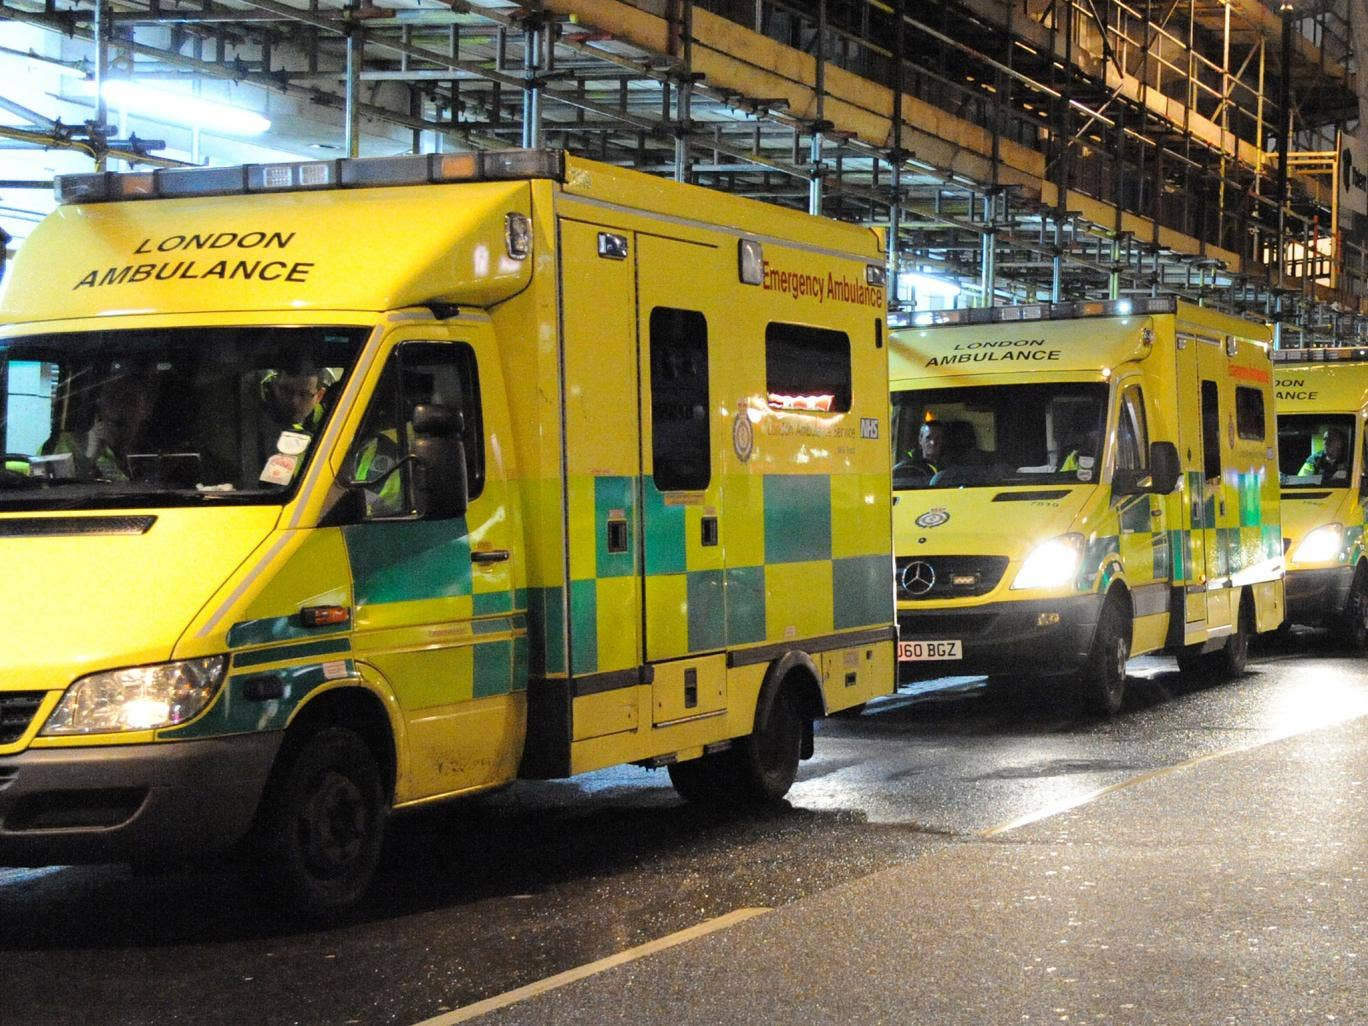 General complaints about patient transport including ambulances were up by 43 per cent